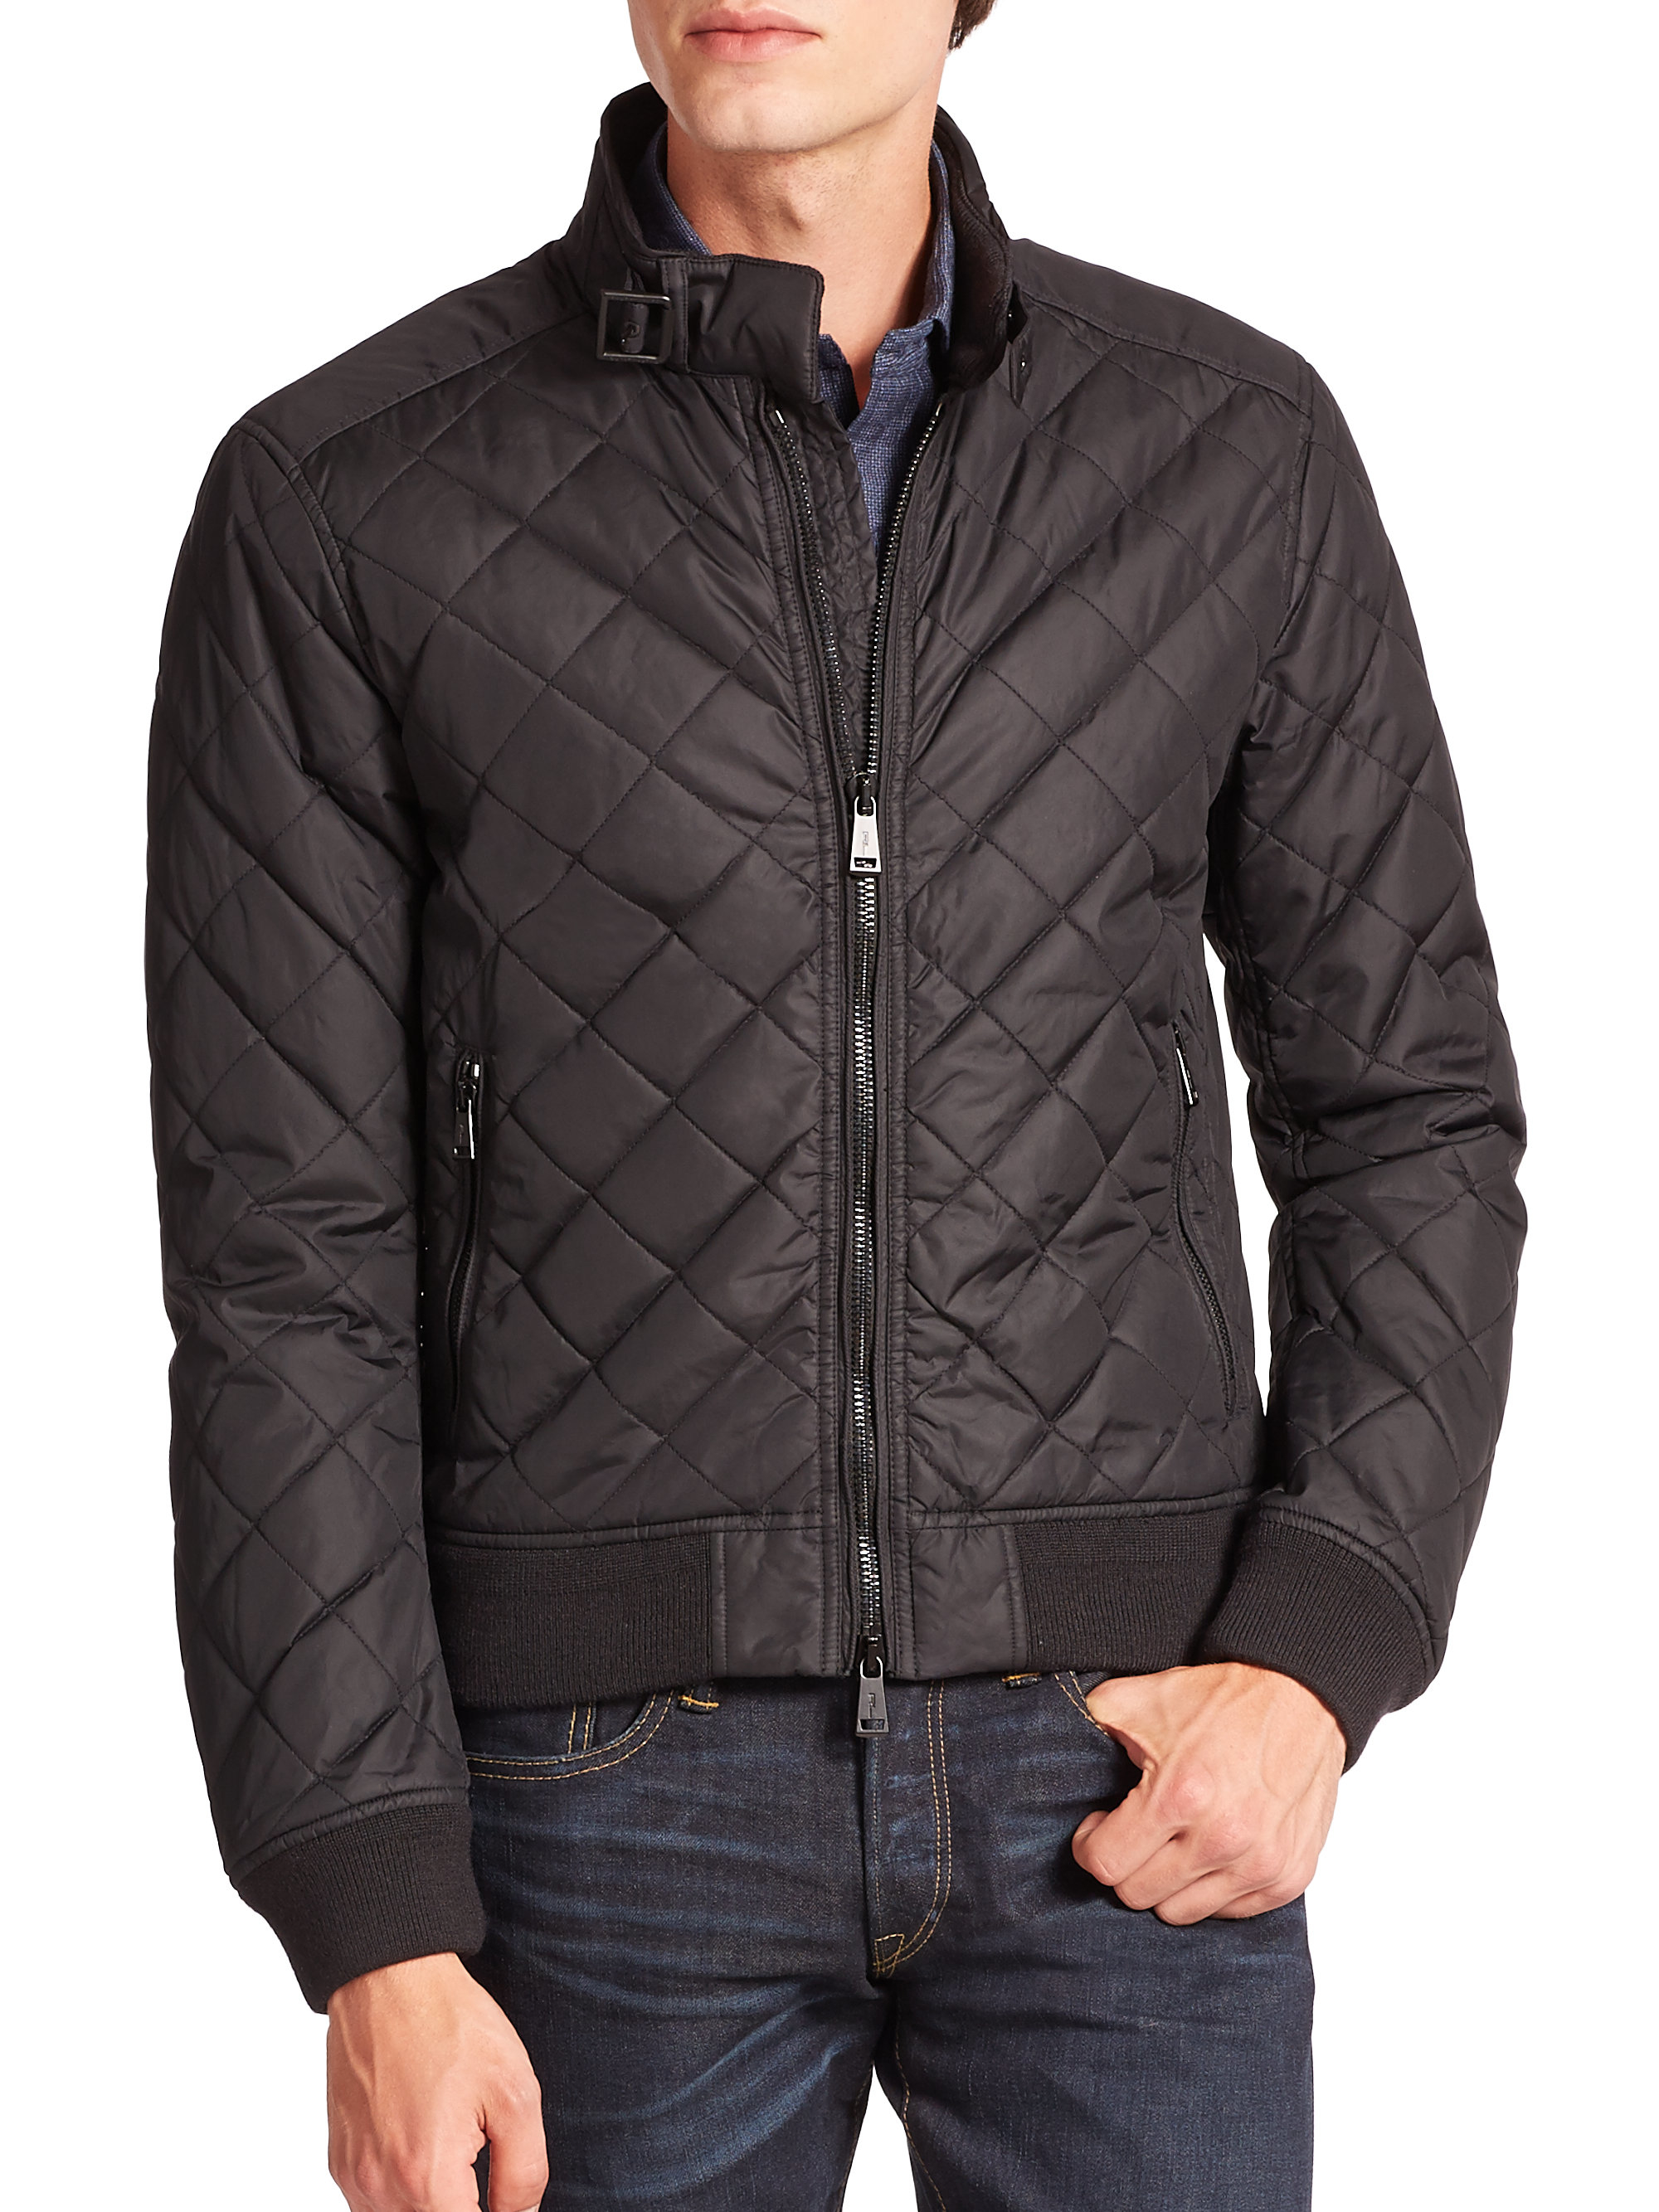 Lyst - Polo ralph lauren Quilted Moto Bomber Jacket in Black for Men : polo ralph lauren quilted - Adamdwight.com